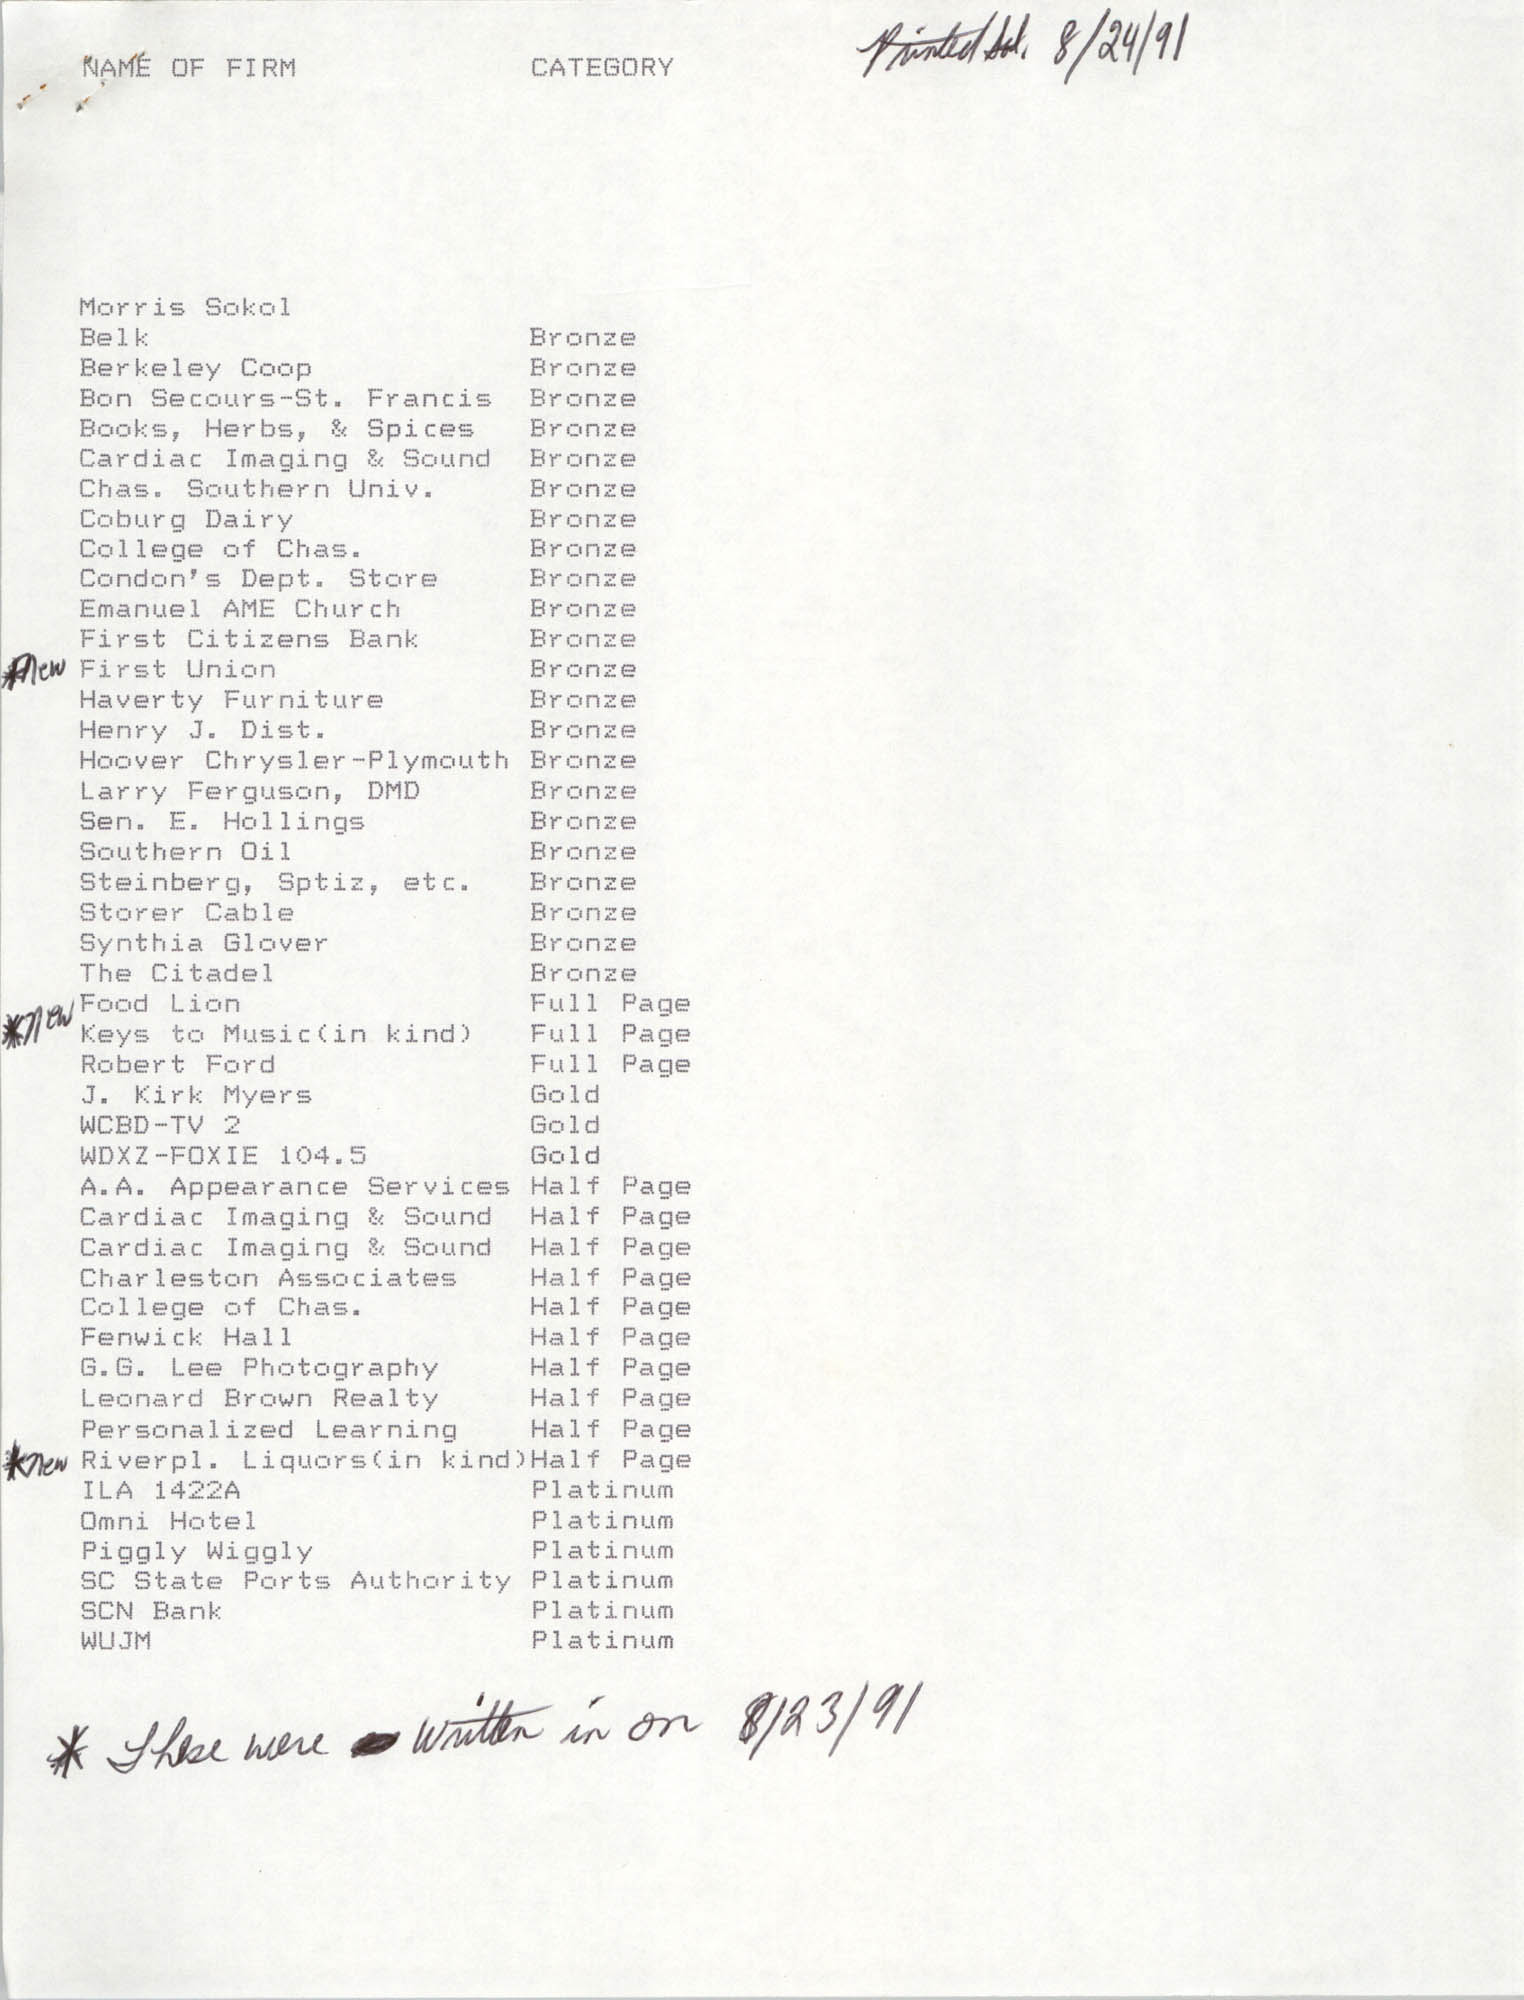 List of Contributors, August 1991